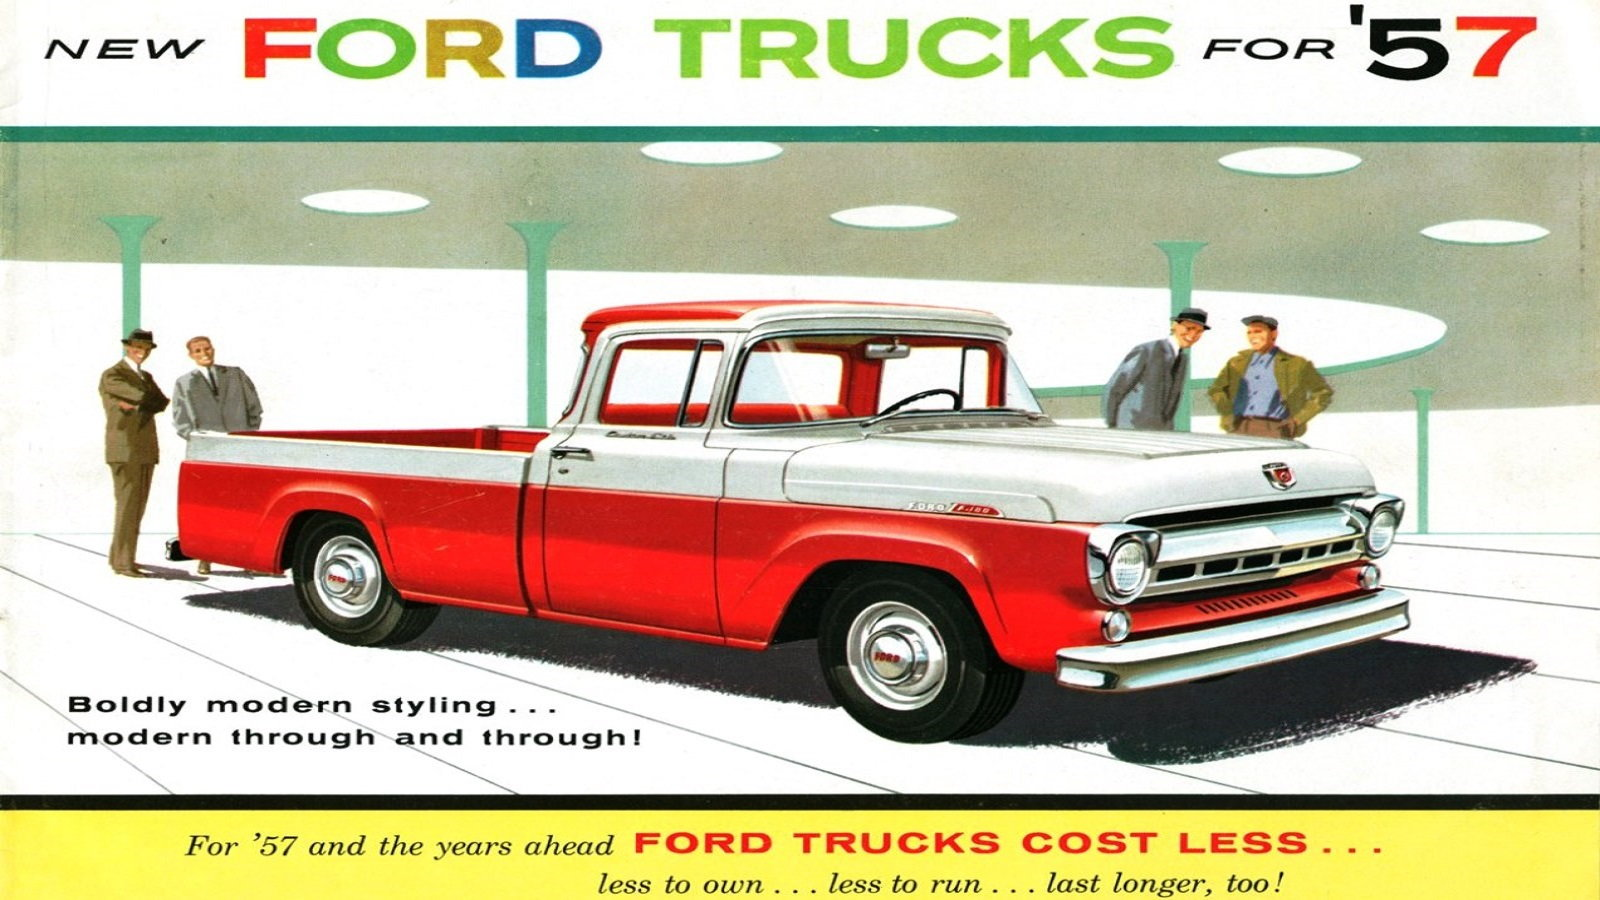 The 1957 Ford F-100 Styleside